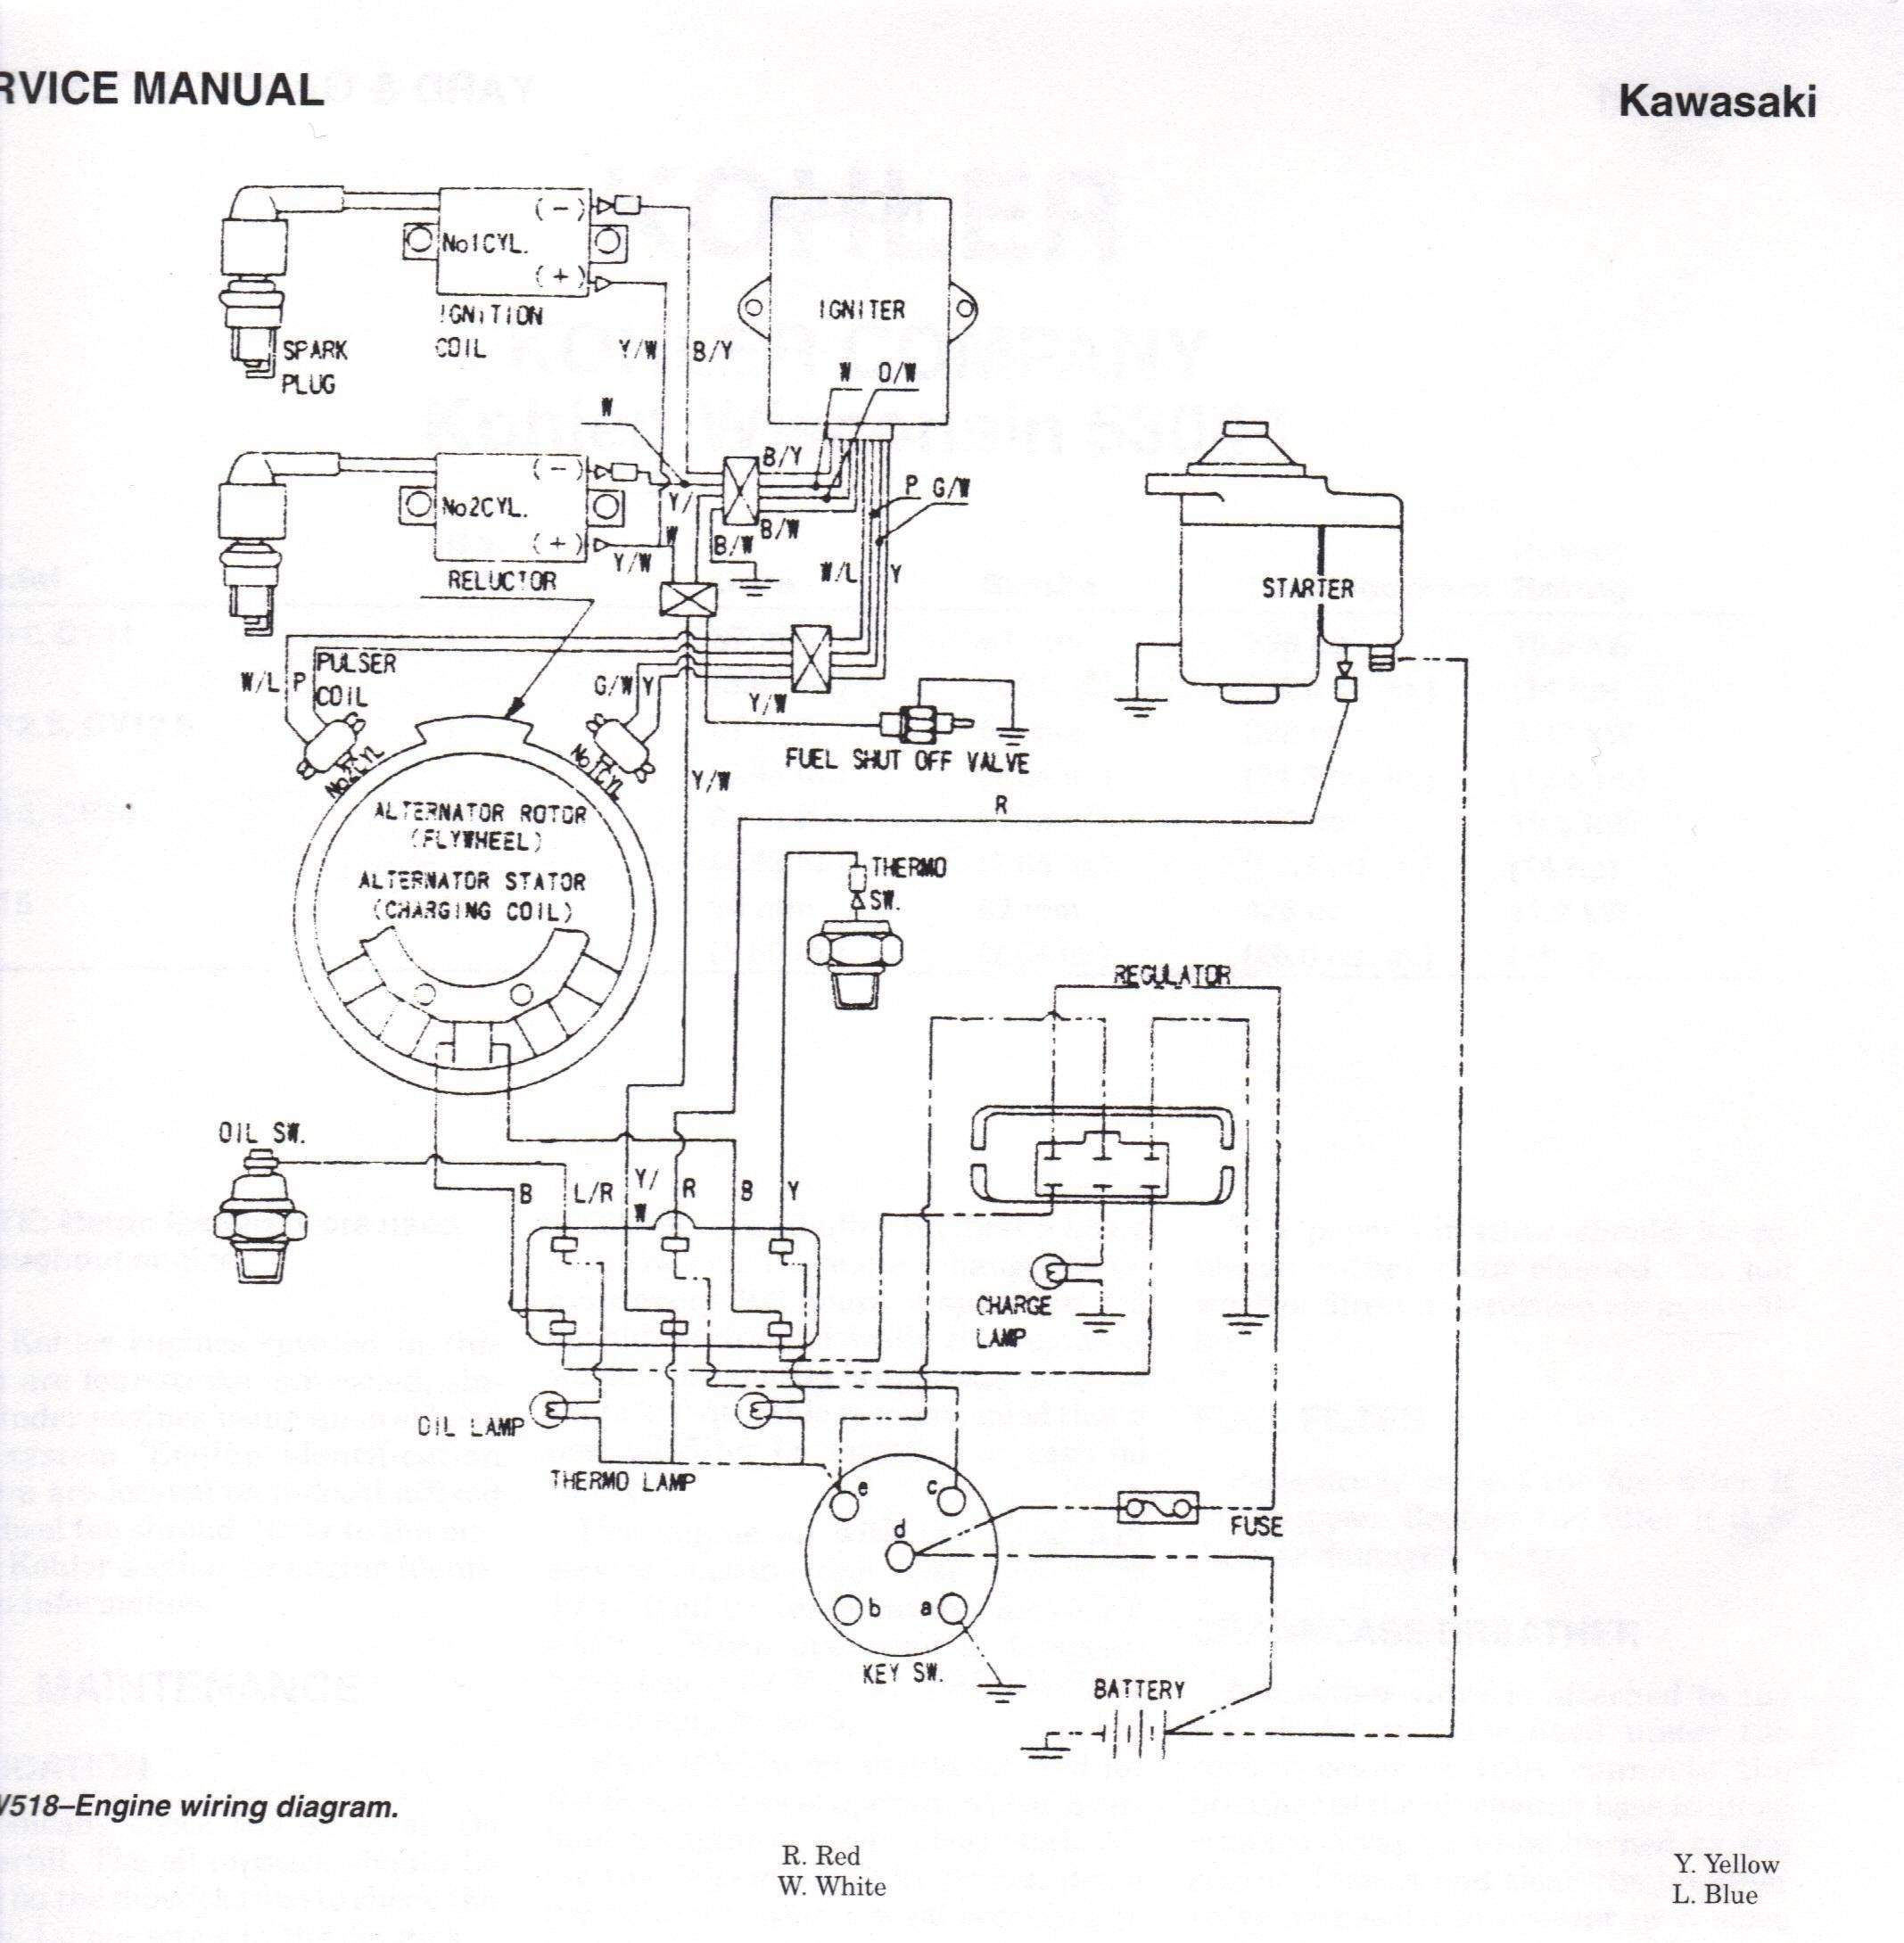 John Deere Gator Wiring Diagram | Free Wiring Diagram on bobcat 2200 wiring diagram, kawasaki mule wiring diagram, polaris ranger wiring diagram, john deere gator 4x2 engine diagram, cub cadet tractor wiring diagram, peg perego wiring diagram, polaris outlaw wiring diagram, kawasaki teryx wiring diagram, apache wiring diagram, john deere gator parts diagram, home wiring diagram, john deere gator replacement parts, arctic cat prowler wiring diagram, yamaha rhino wiring diagram, bobcat 2300 wiring diagram, polaris trail boss wiring diagram, power wheels jeep wiring diagram, john deere lx172 parts diagram, polaris sportsman 600 wiring diagram, hpx gator parts diagram,